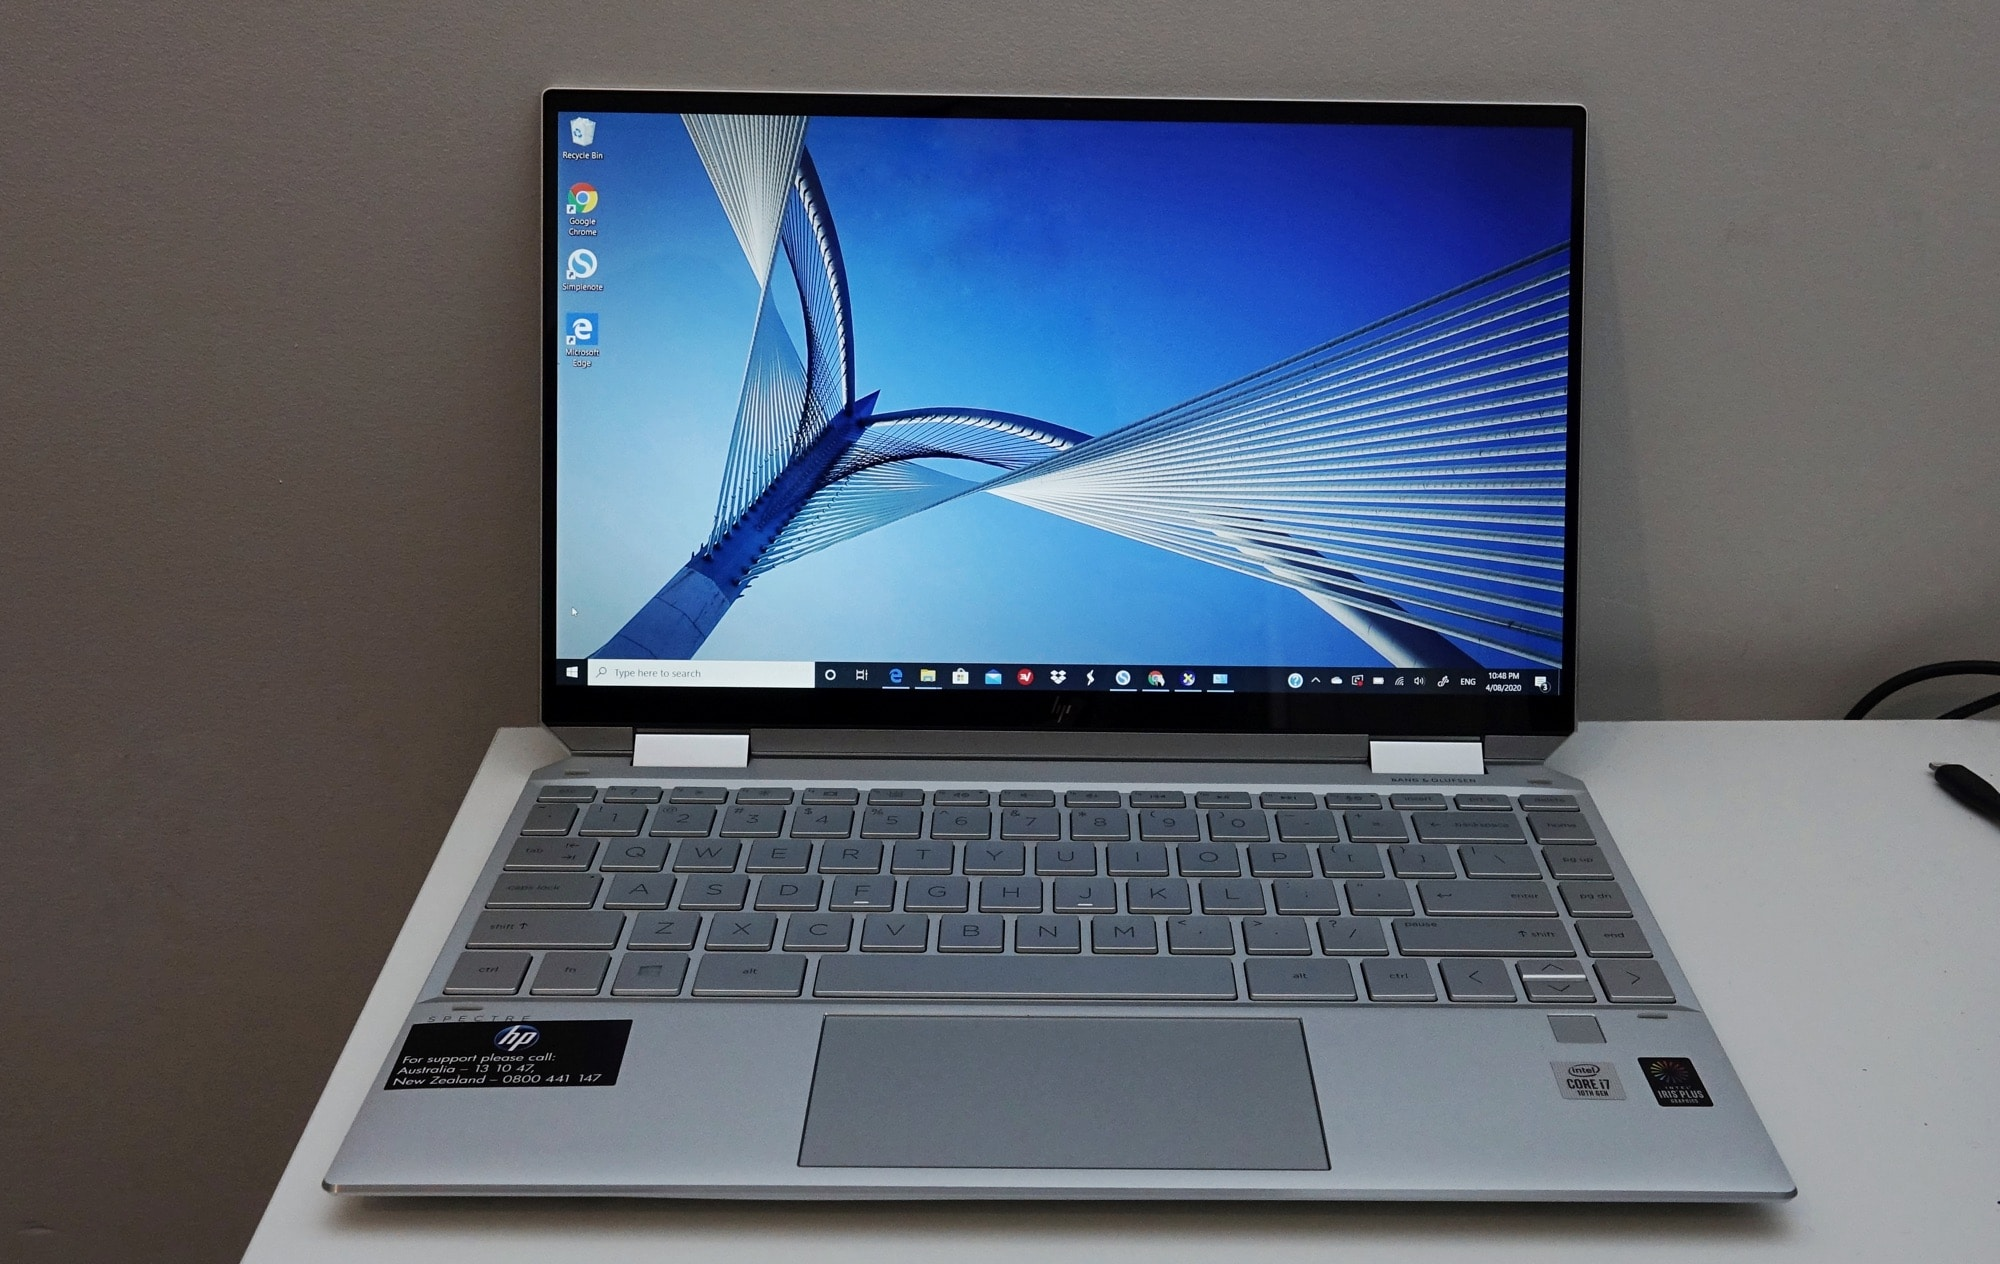 The HP Spectre X360 in 2020.